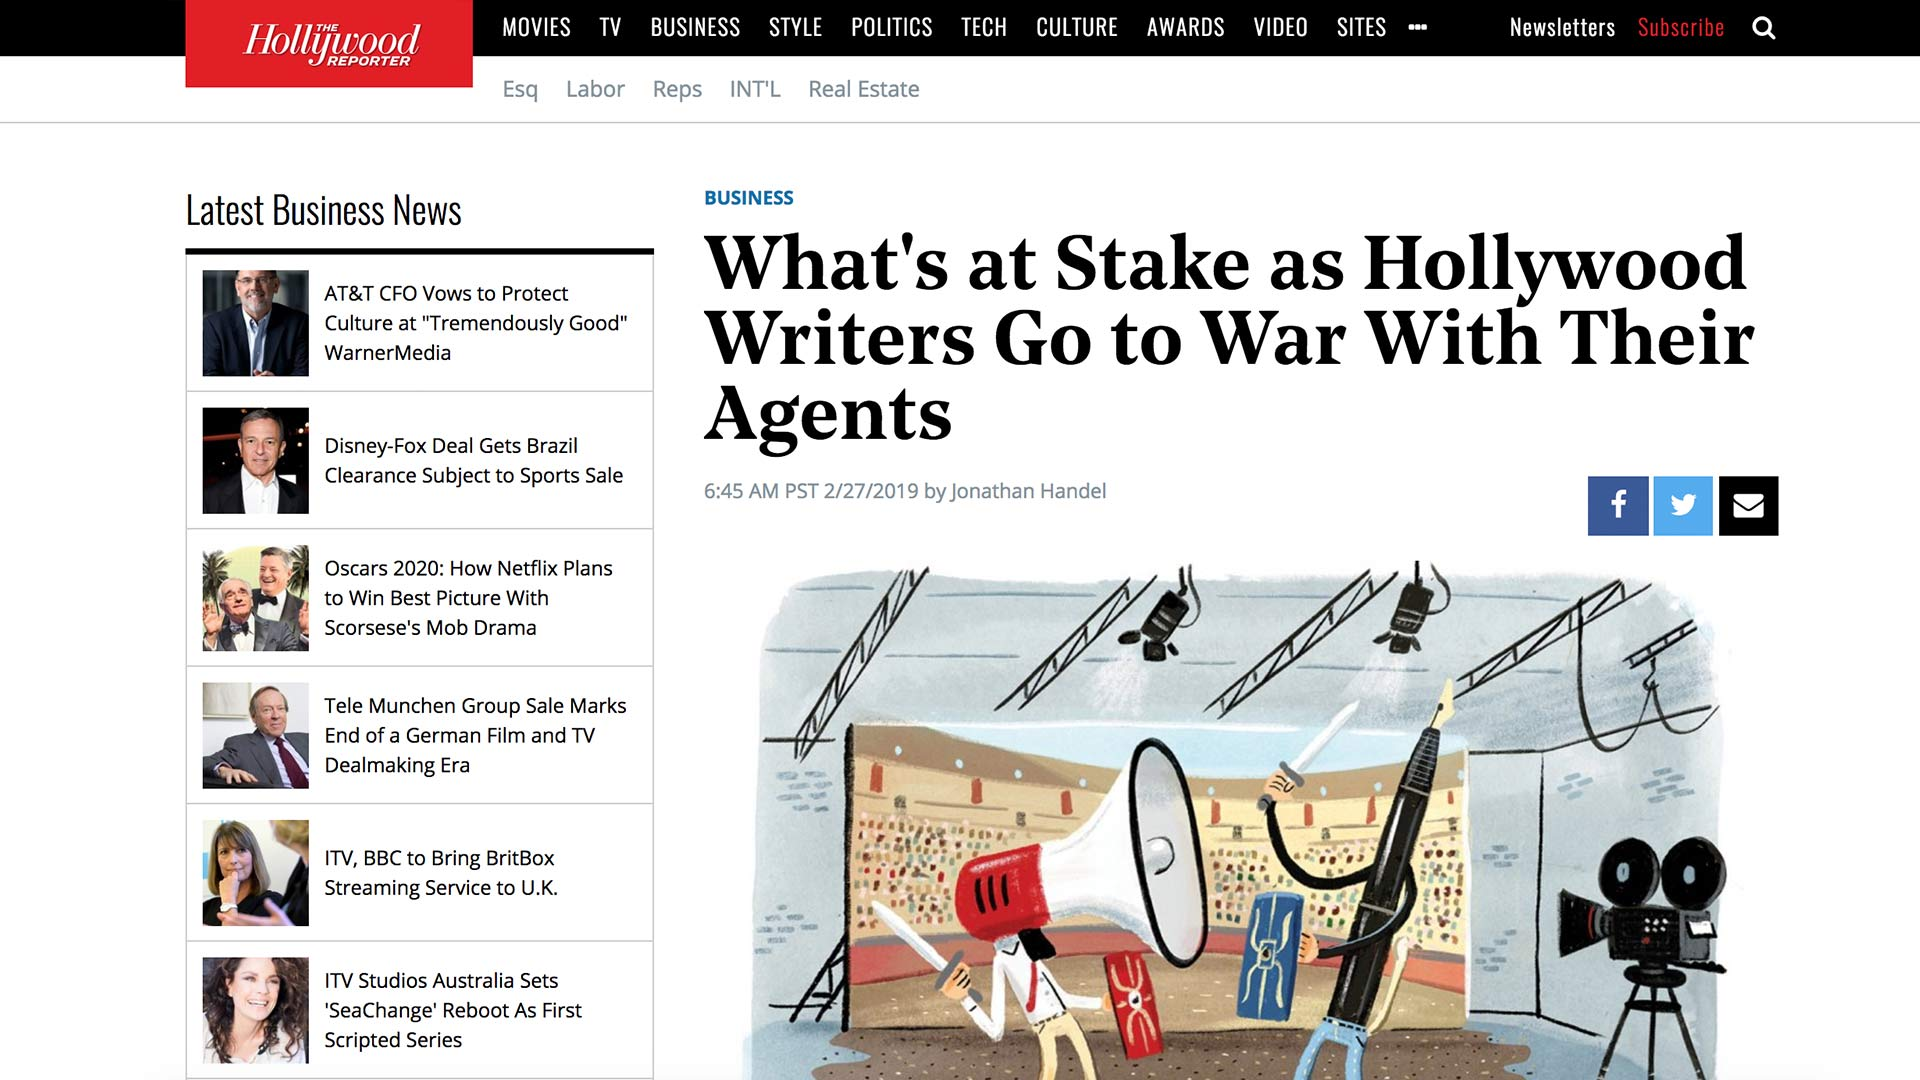 Fairness Rocks News What's at Stake as Hollywood Writers Go to War With Their Agents